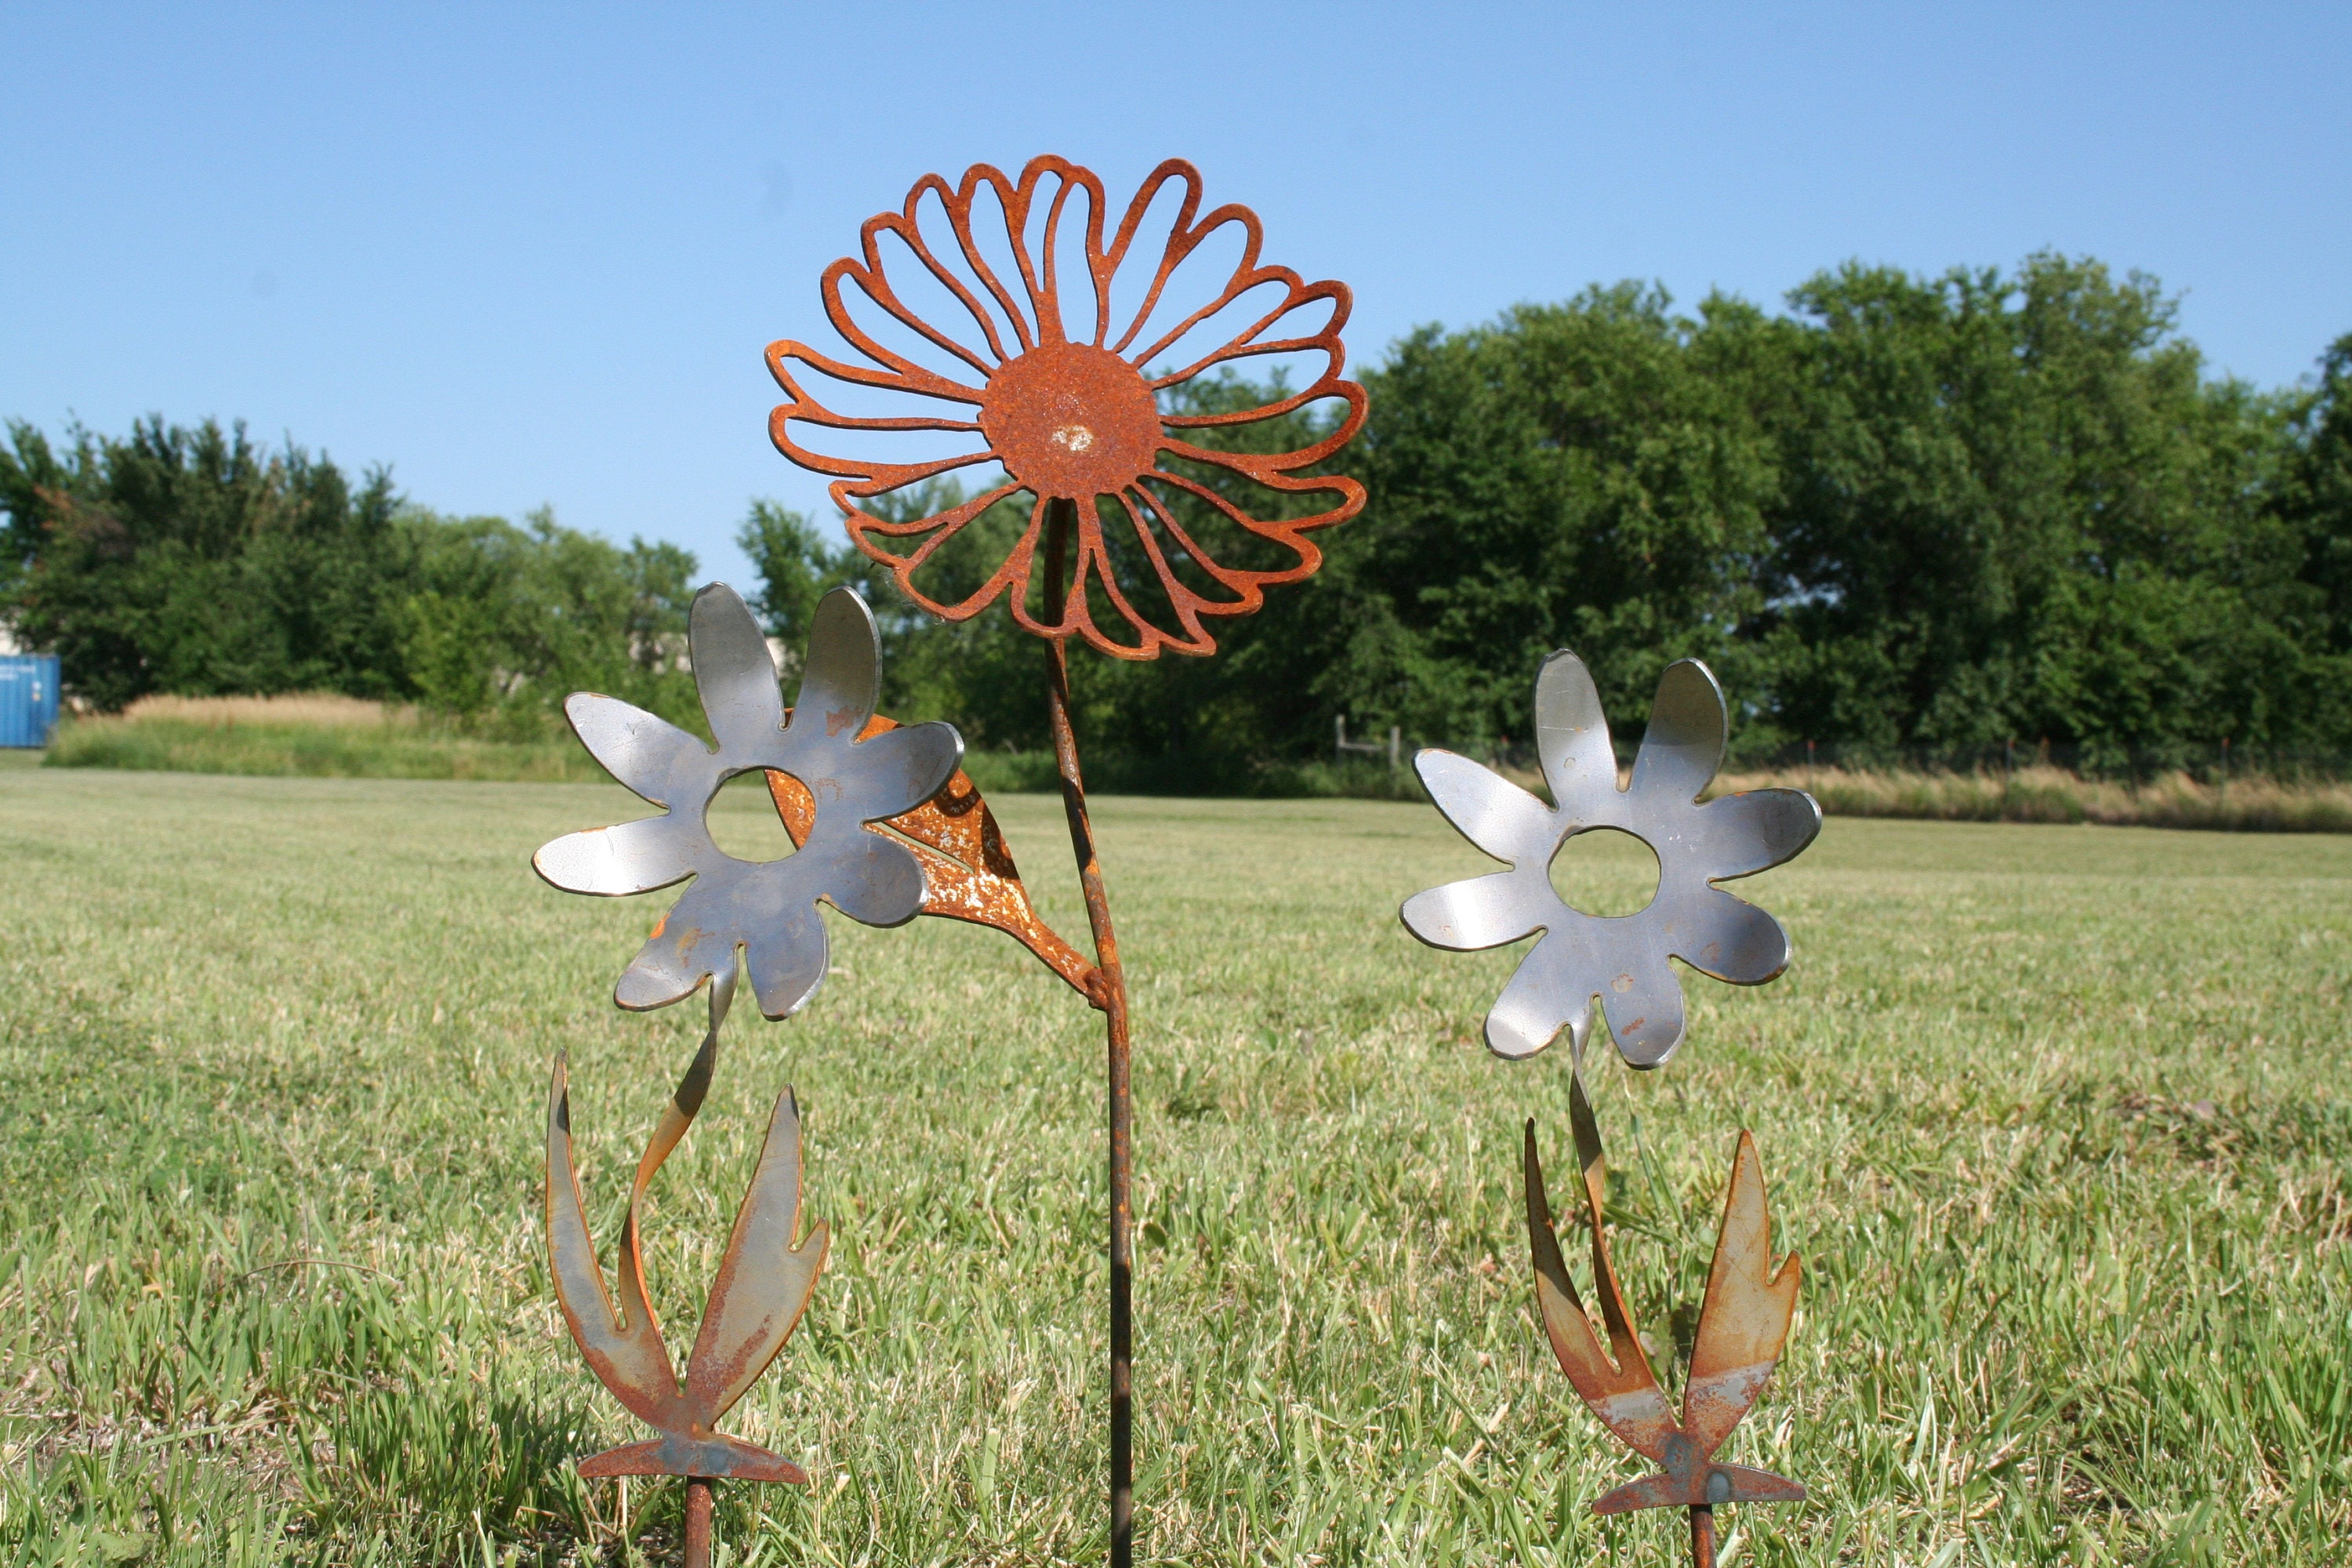 Ordinaire Garden Stake Set, Gardener Gift Set, Metal Flower, Set Of Flowers, Daisy  Stake, Farm And Garden, Landscape Set, Mixed Garden Stakes